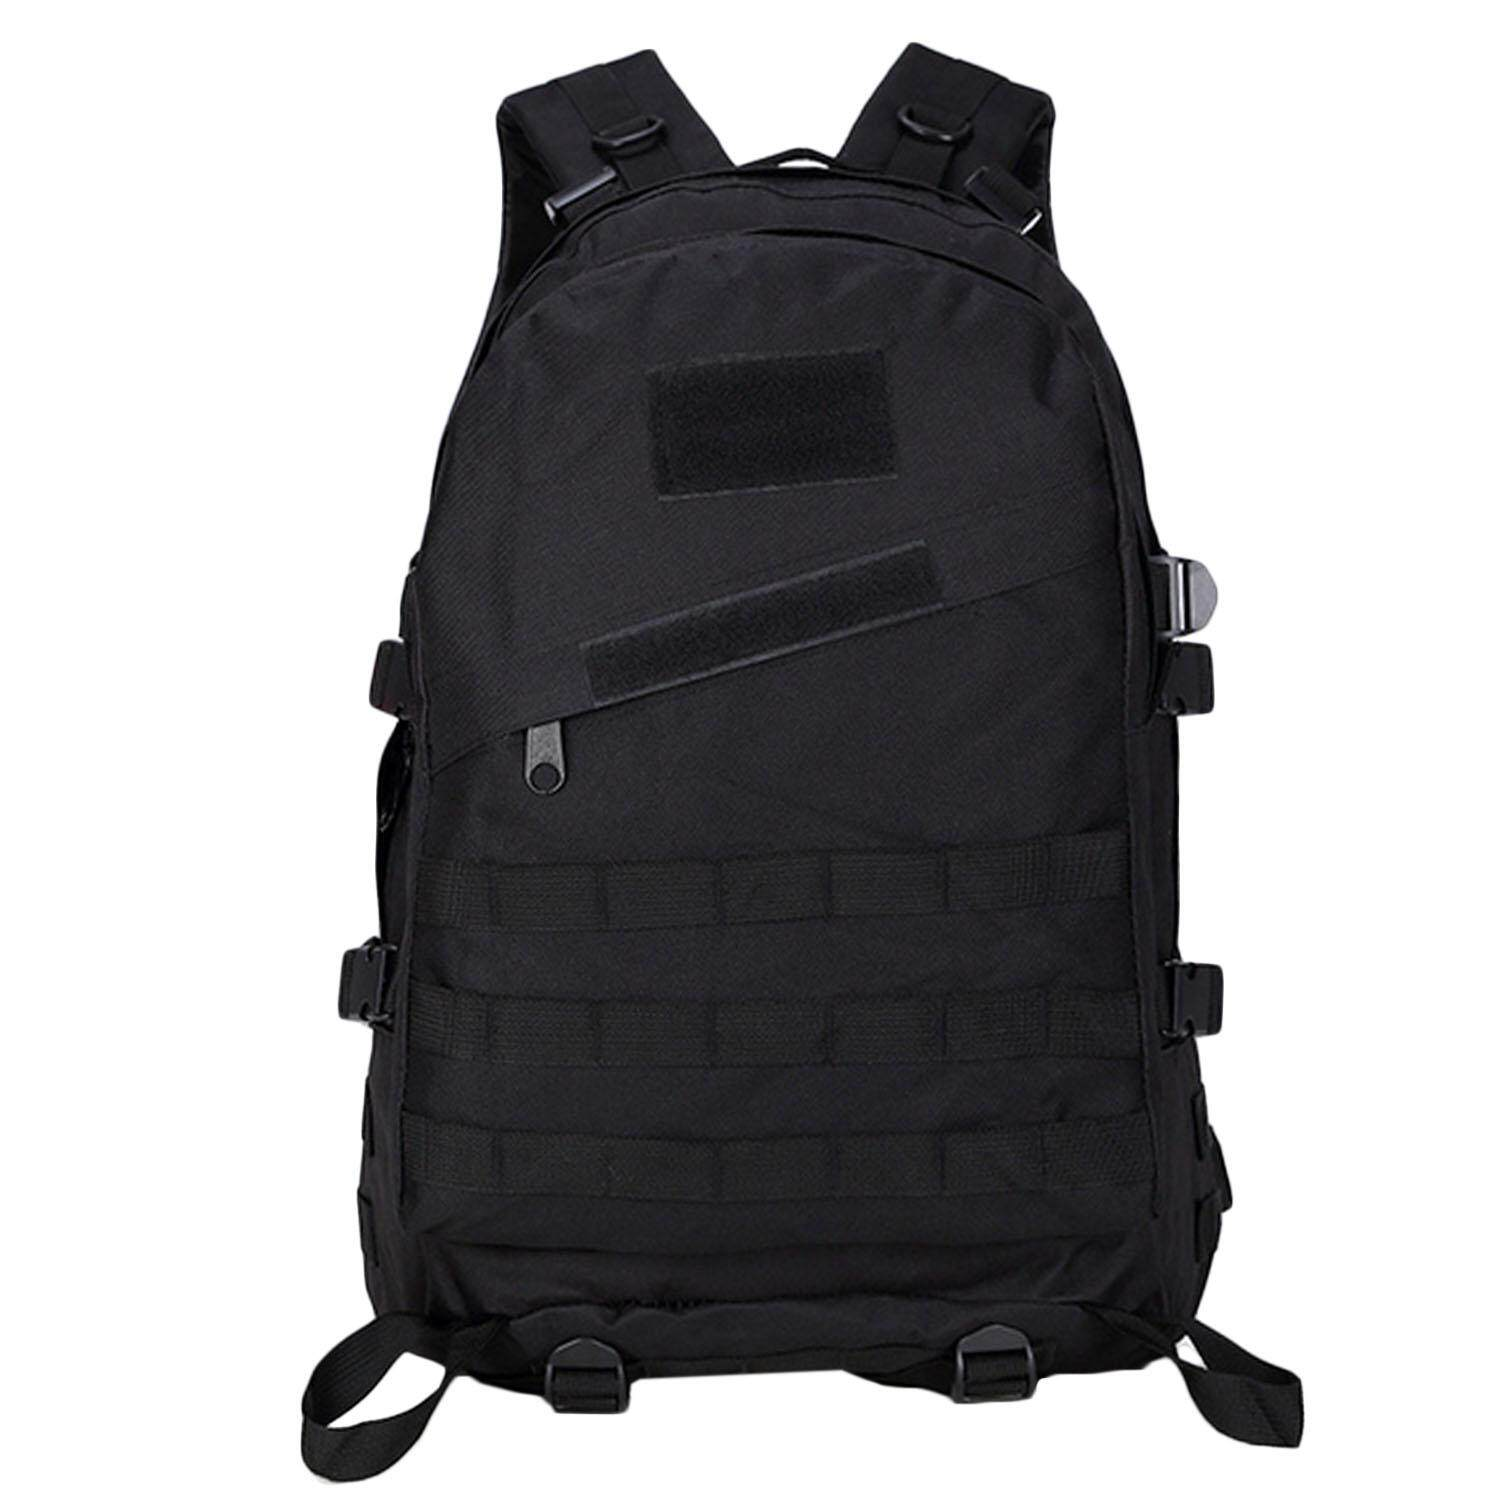 Outdoor Sport Military Tactical Backpack Army Backpack Travel Camping Hiking Trekking Bag Pubg Level 3 Backpack For Game Fans Black - Intl By Vococal Shop.